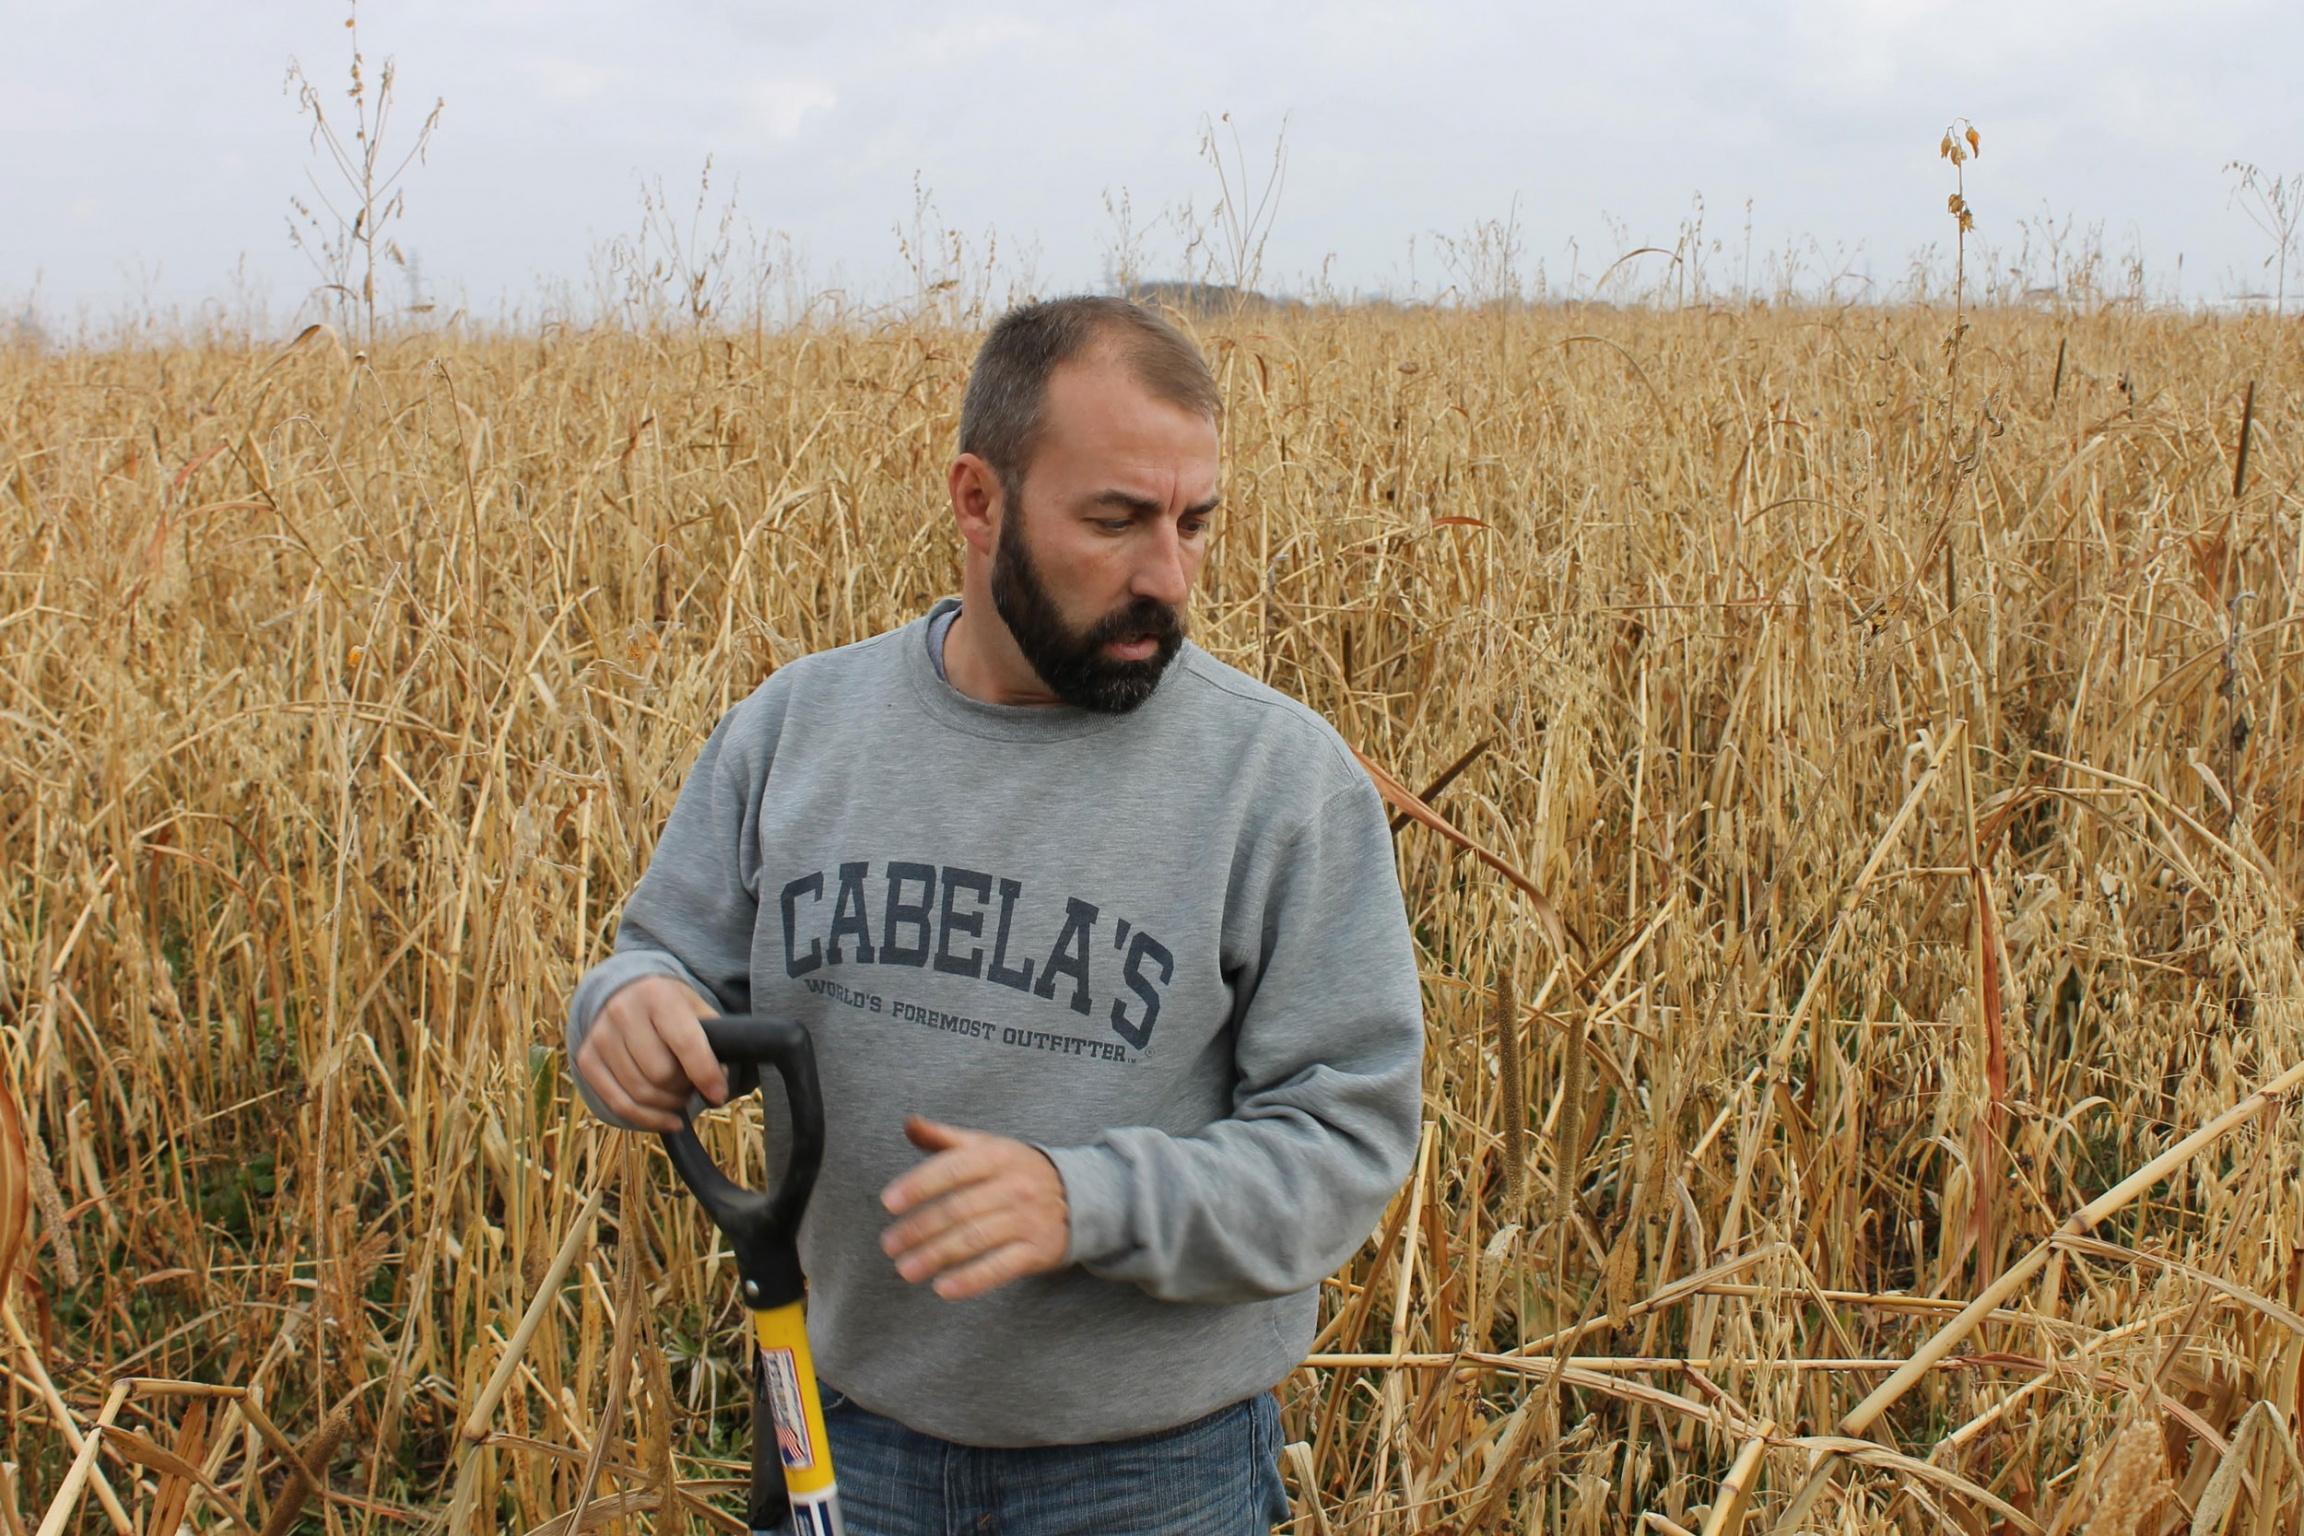 A man is shown wearing a Cabela's sweatshirt and holding a handled-tool.